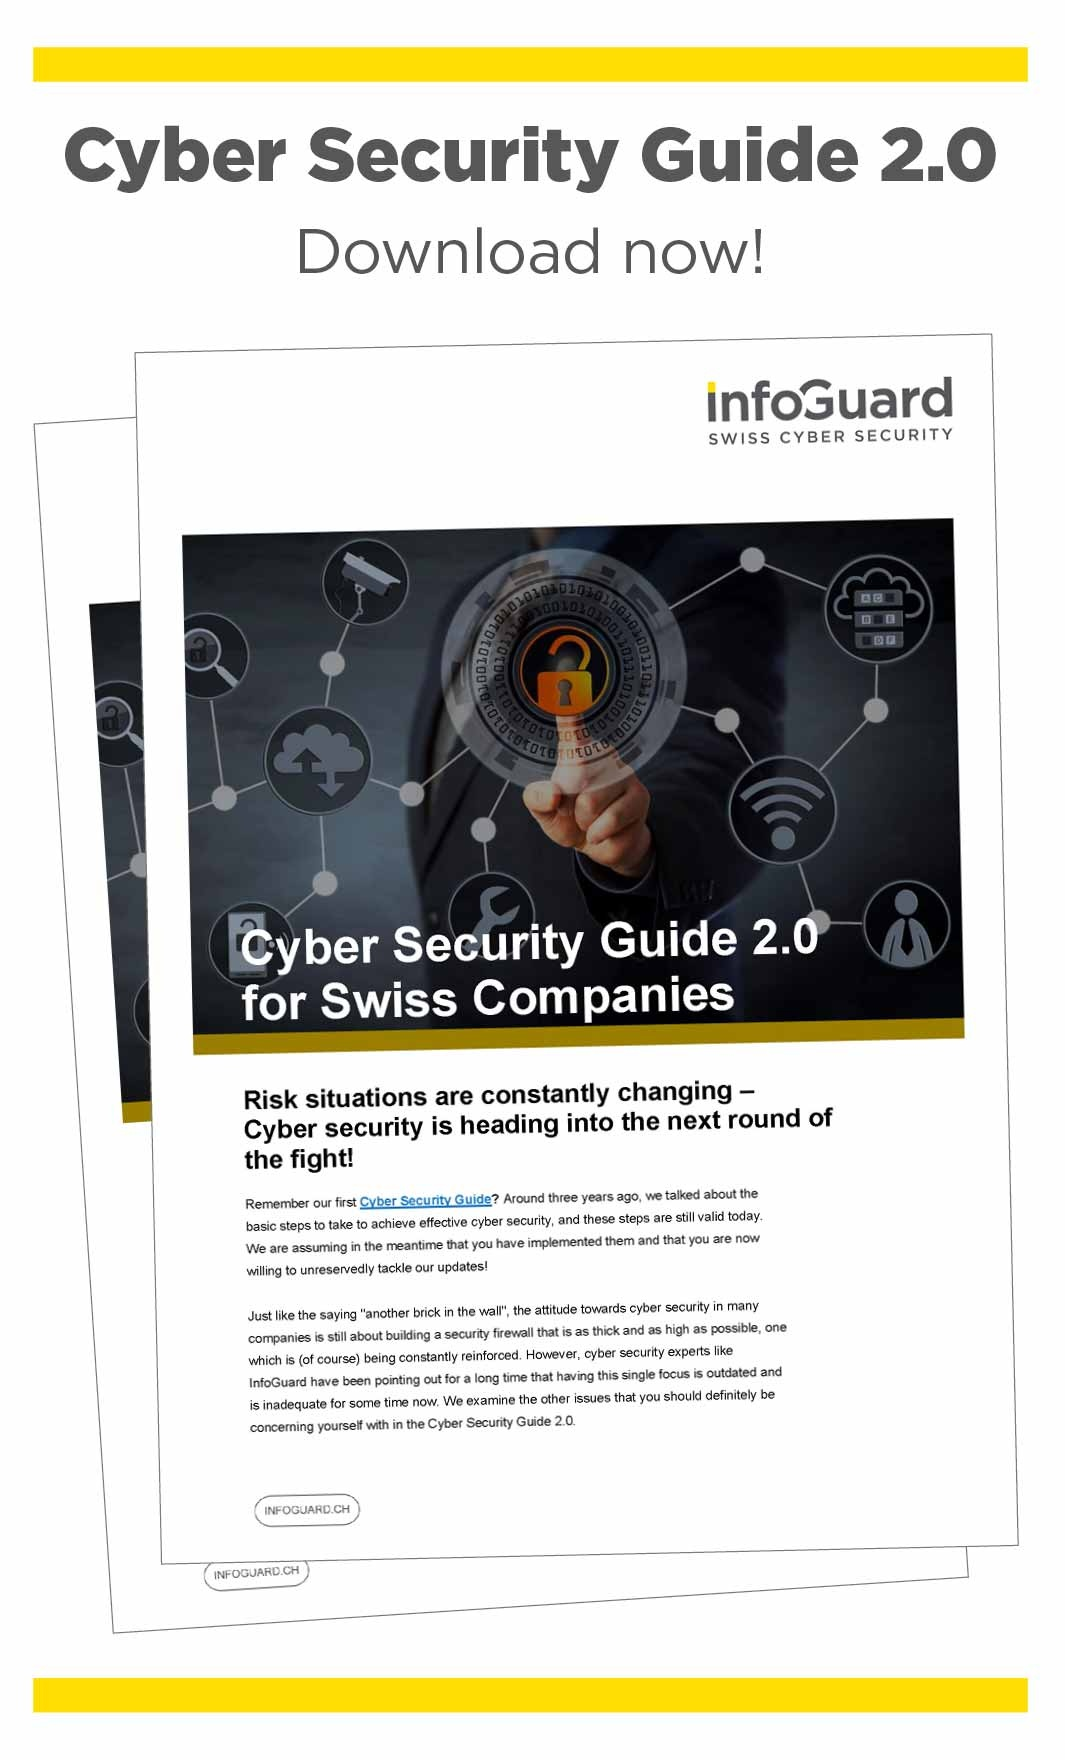 infoguard-cyber-security-guide-2